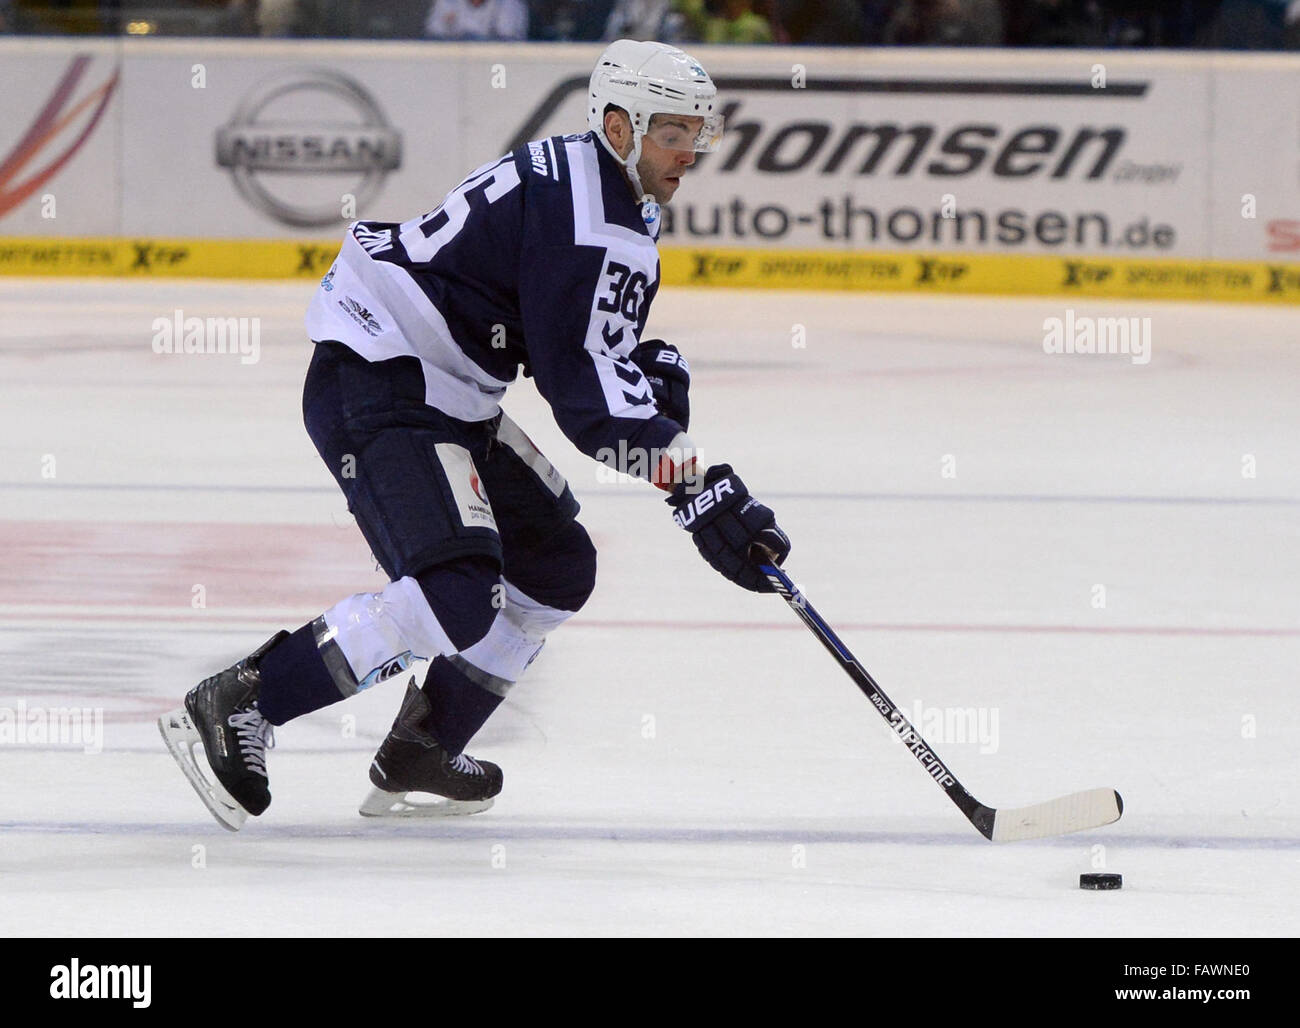 Hamburg, Germany. 30th Oct, 2015. Hamburg's Mathieu Roy in action during the German DEL ice hockey match between - Stock Image